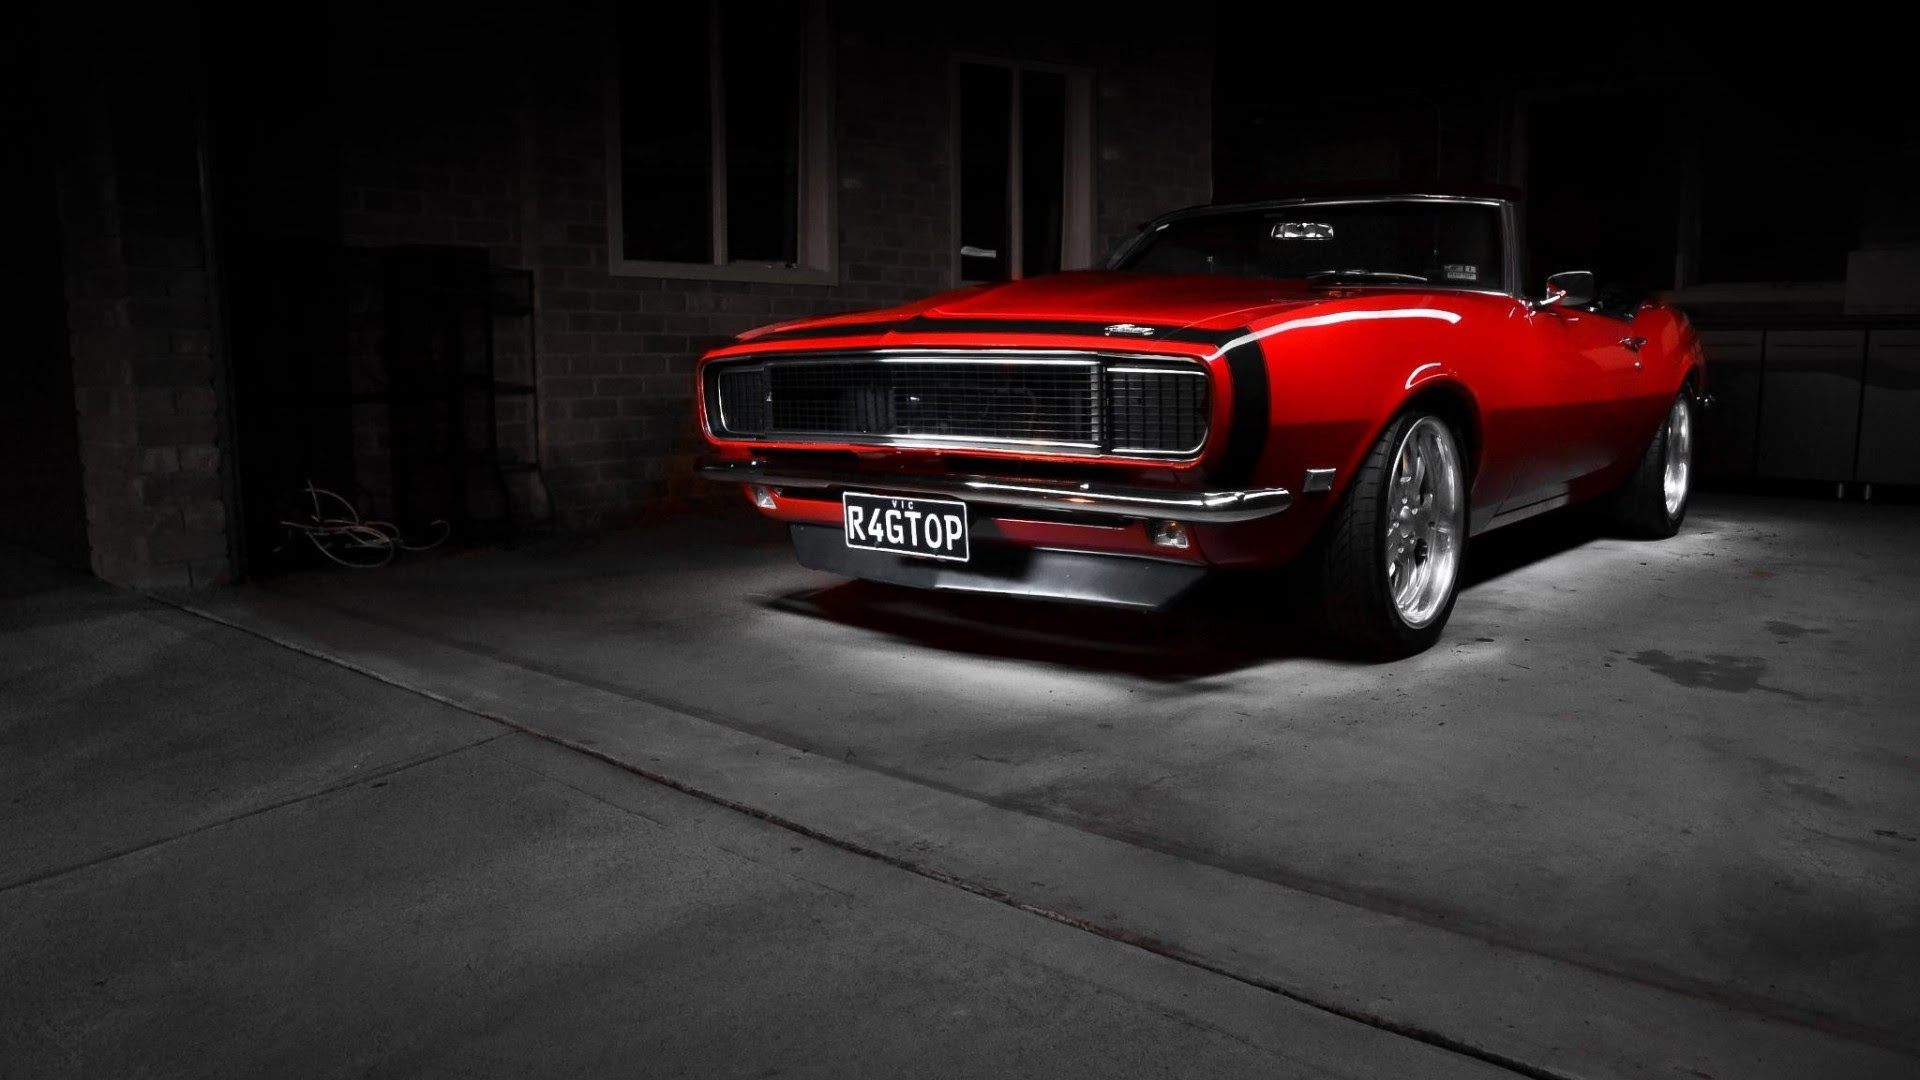 Muscle Car Wallpaper 1920x1080 70+ images